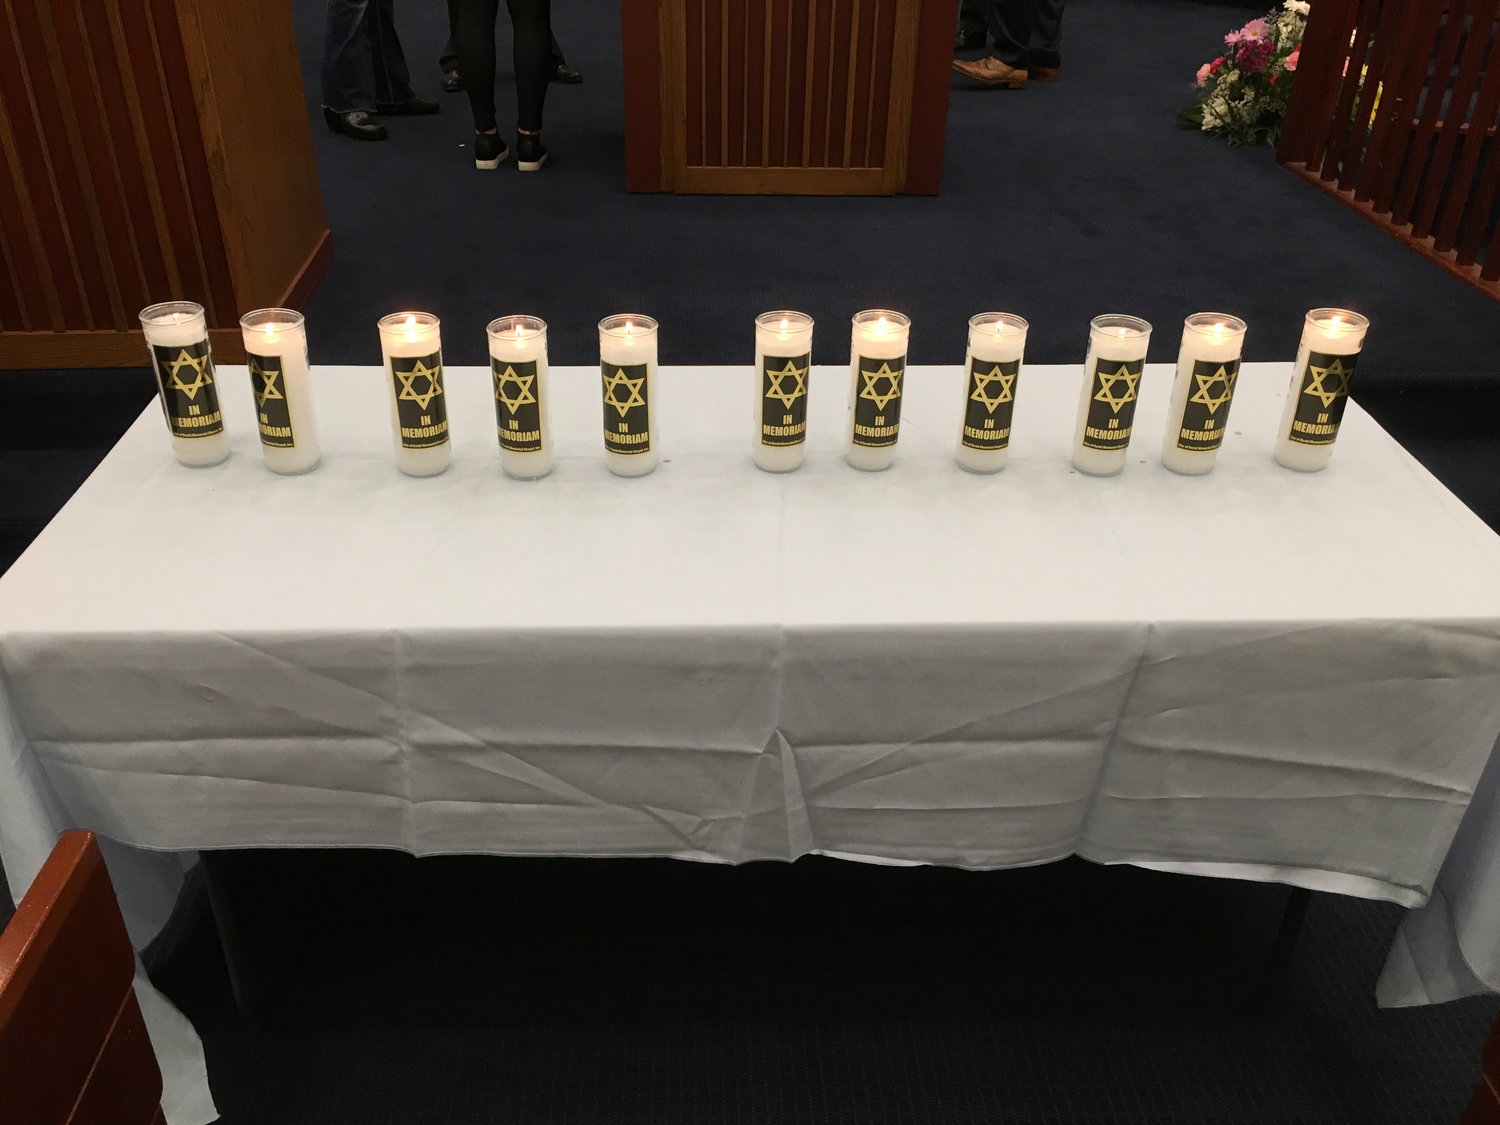 Eleven candles — one for each victim — were lit at the Merrick Jewish Centre on Monday night, as the community mourned the Pittsburgh victims.